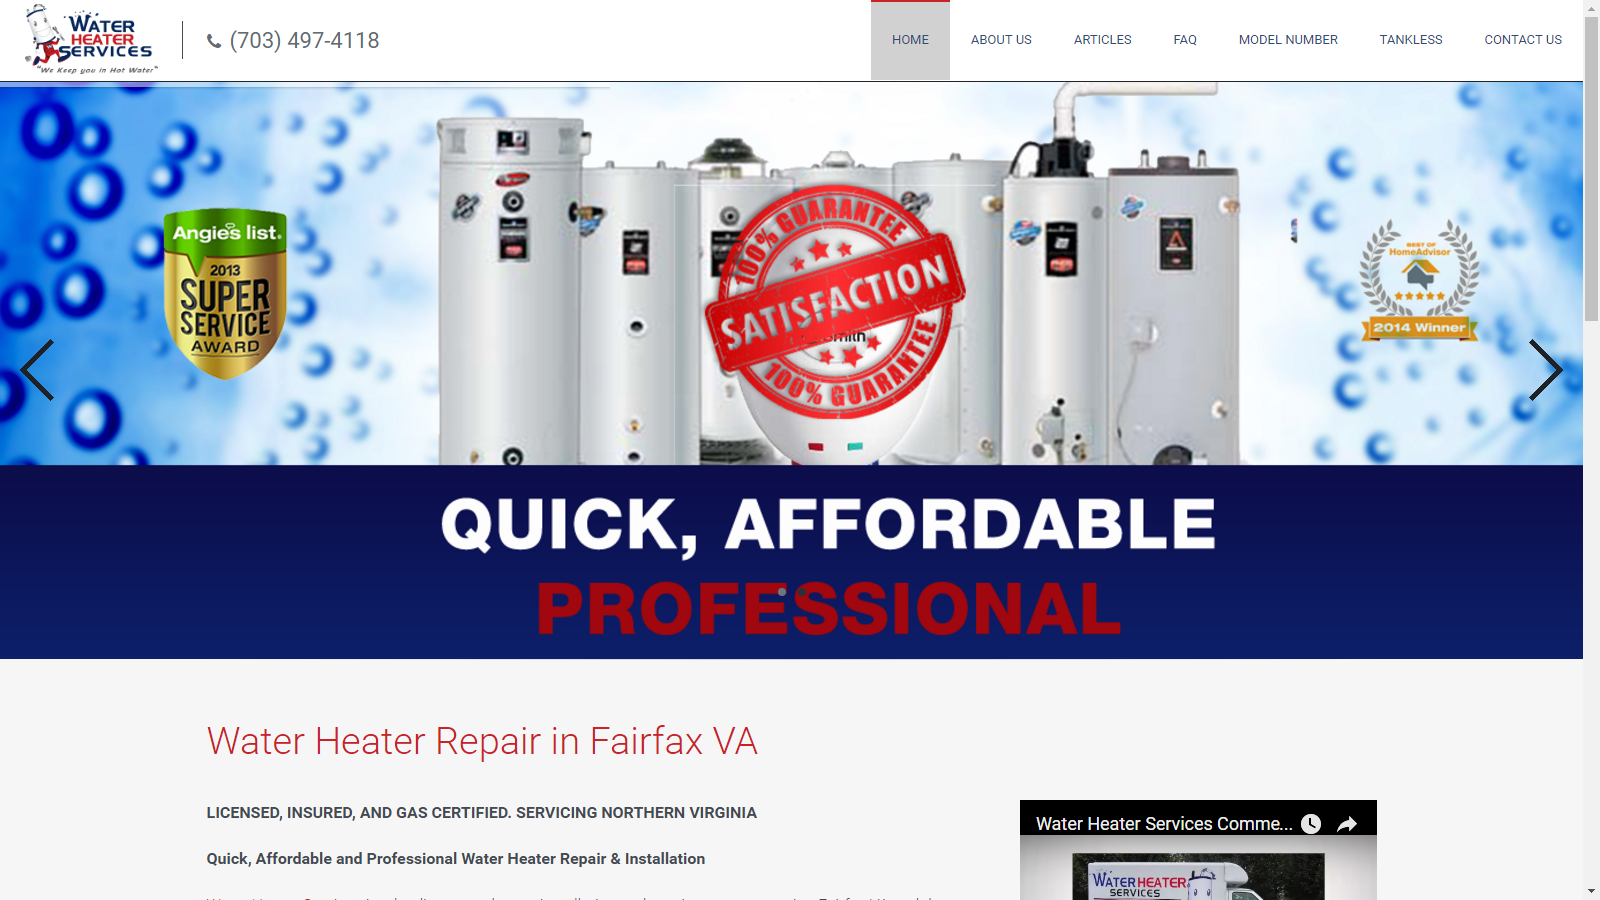 Water Heater Services Website